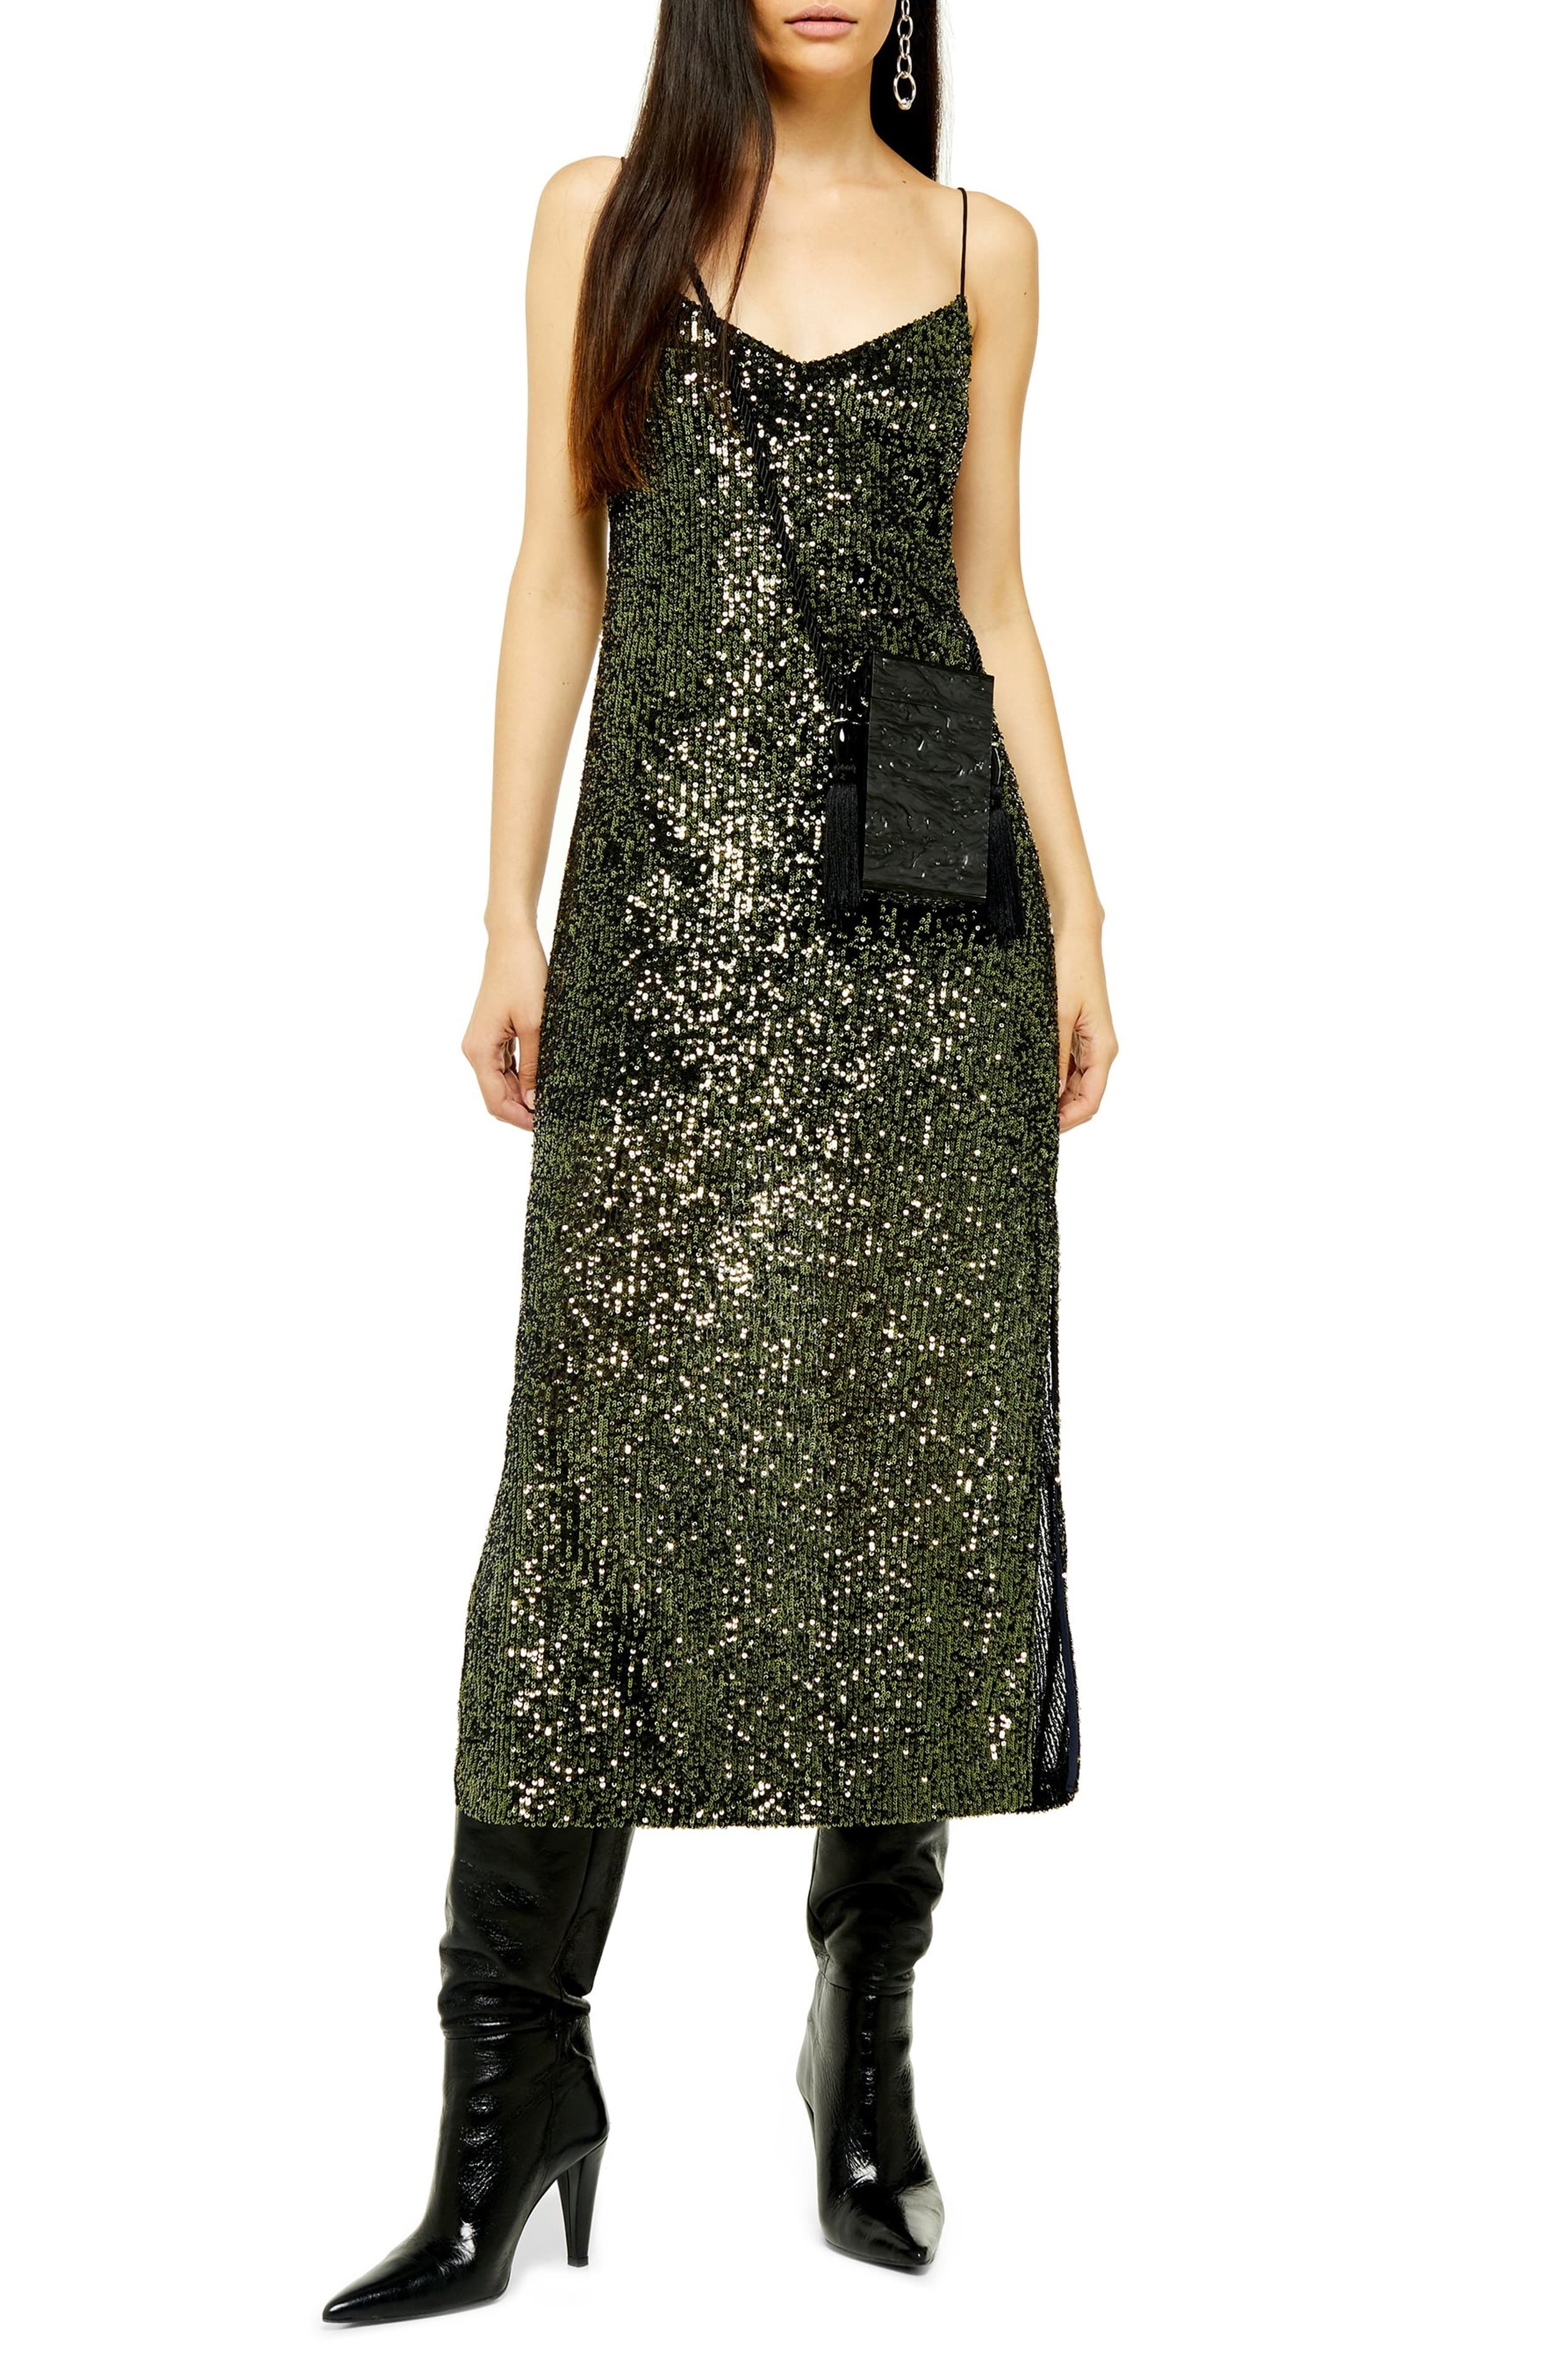 "<p>Allover sequins make this spaghetti-strap midi dress the perfect way to steal the scene, while a side slit provides a fun, flirty finish. $68</p><p><a  href=""https://shop.nordstrom.com/s/topshop-sequin-midi-dress/5459929/full?origin=category-personalizedsort&breadcrumb=Home%2FWomen%2FShop%20by%20Occasion%2FNight%20Out&color=olive"" target=""_blank"" title=""https://shop.nordstrom.com/s/topshop-sequin-midi-dress/5459929/full?origin=category-personalizedsort&breadcrumb=Home%2FWomen%2FShop%20by%20Occasion%2FNight%20Out&color=olive"">Shop it{&nbsp;}</a></p><p>(Image: Nordstrom){&nbsp;}</p>"